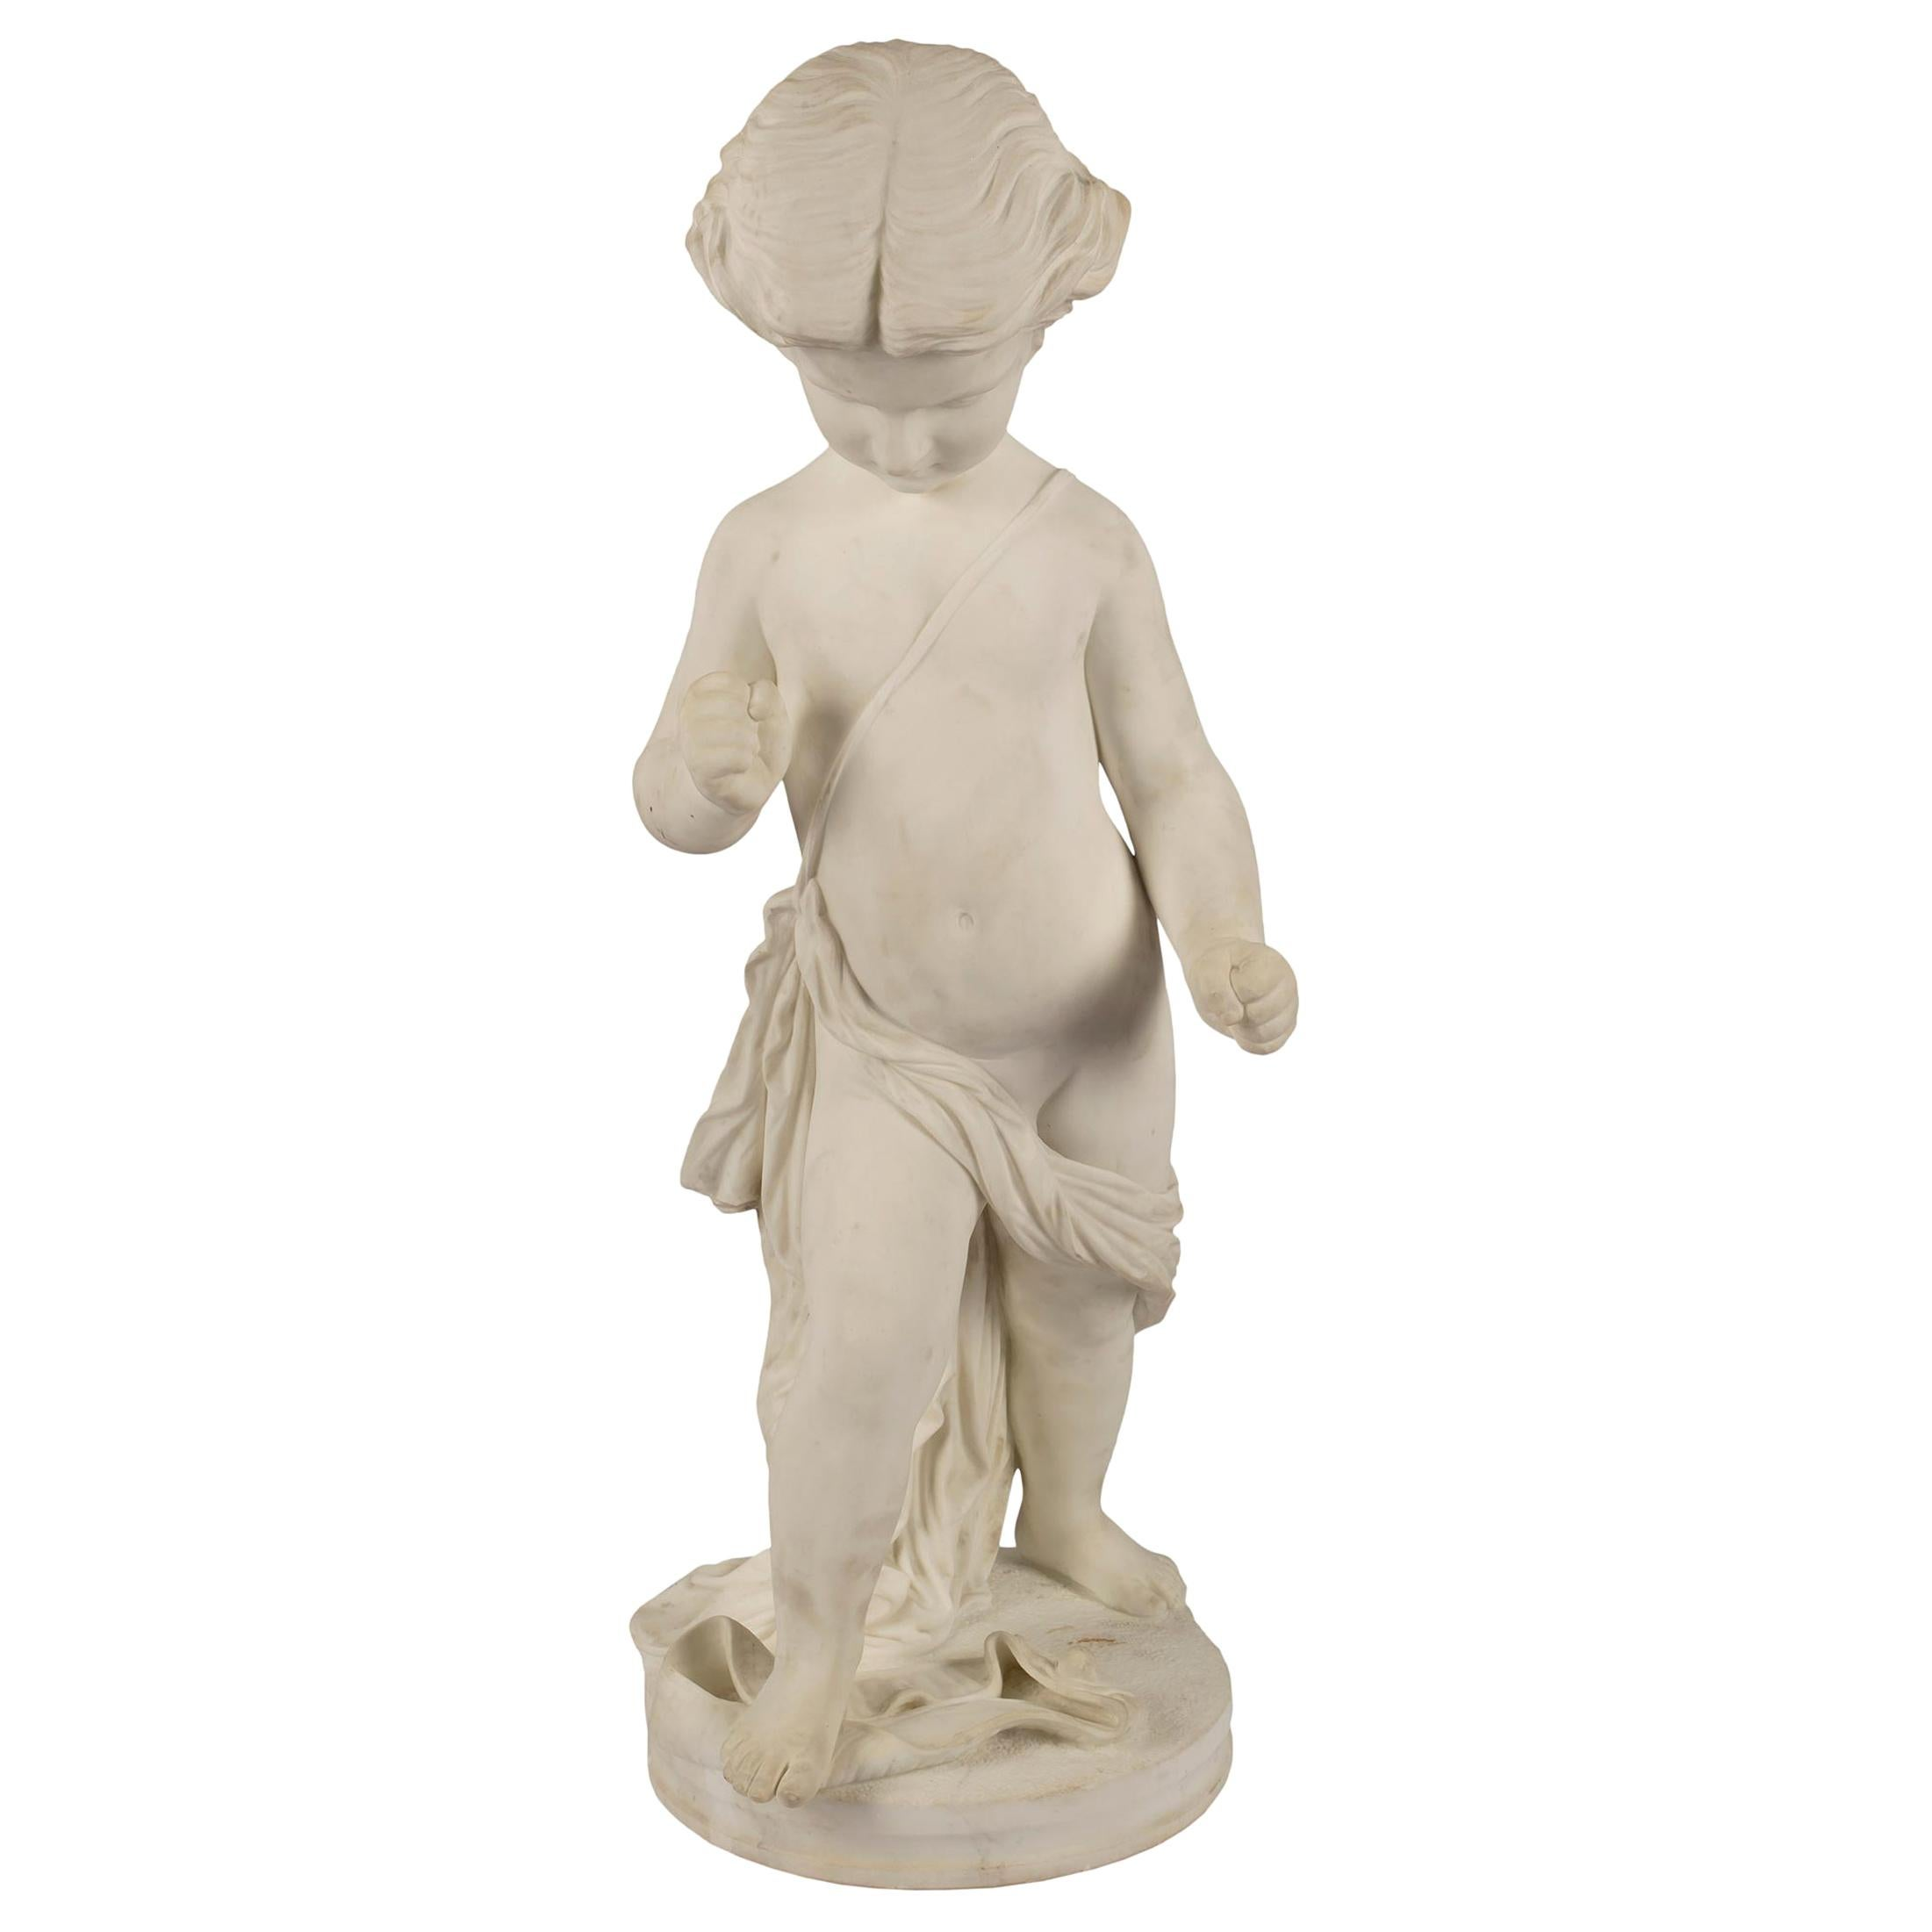 Italian 19th Century White Carrara Marble Statue of a Young Boy